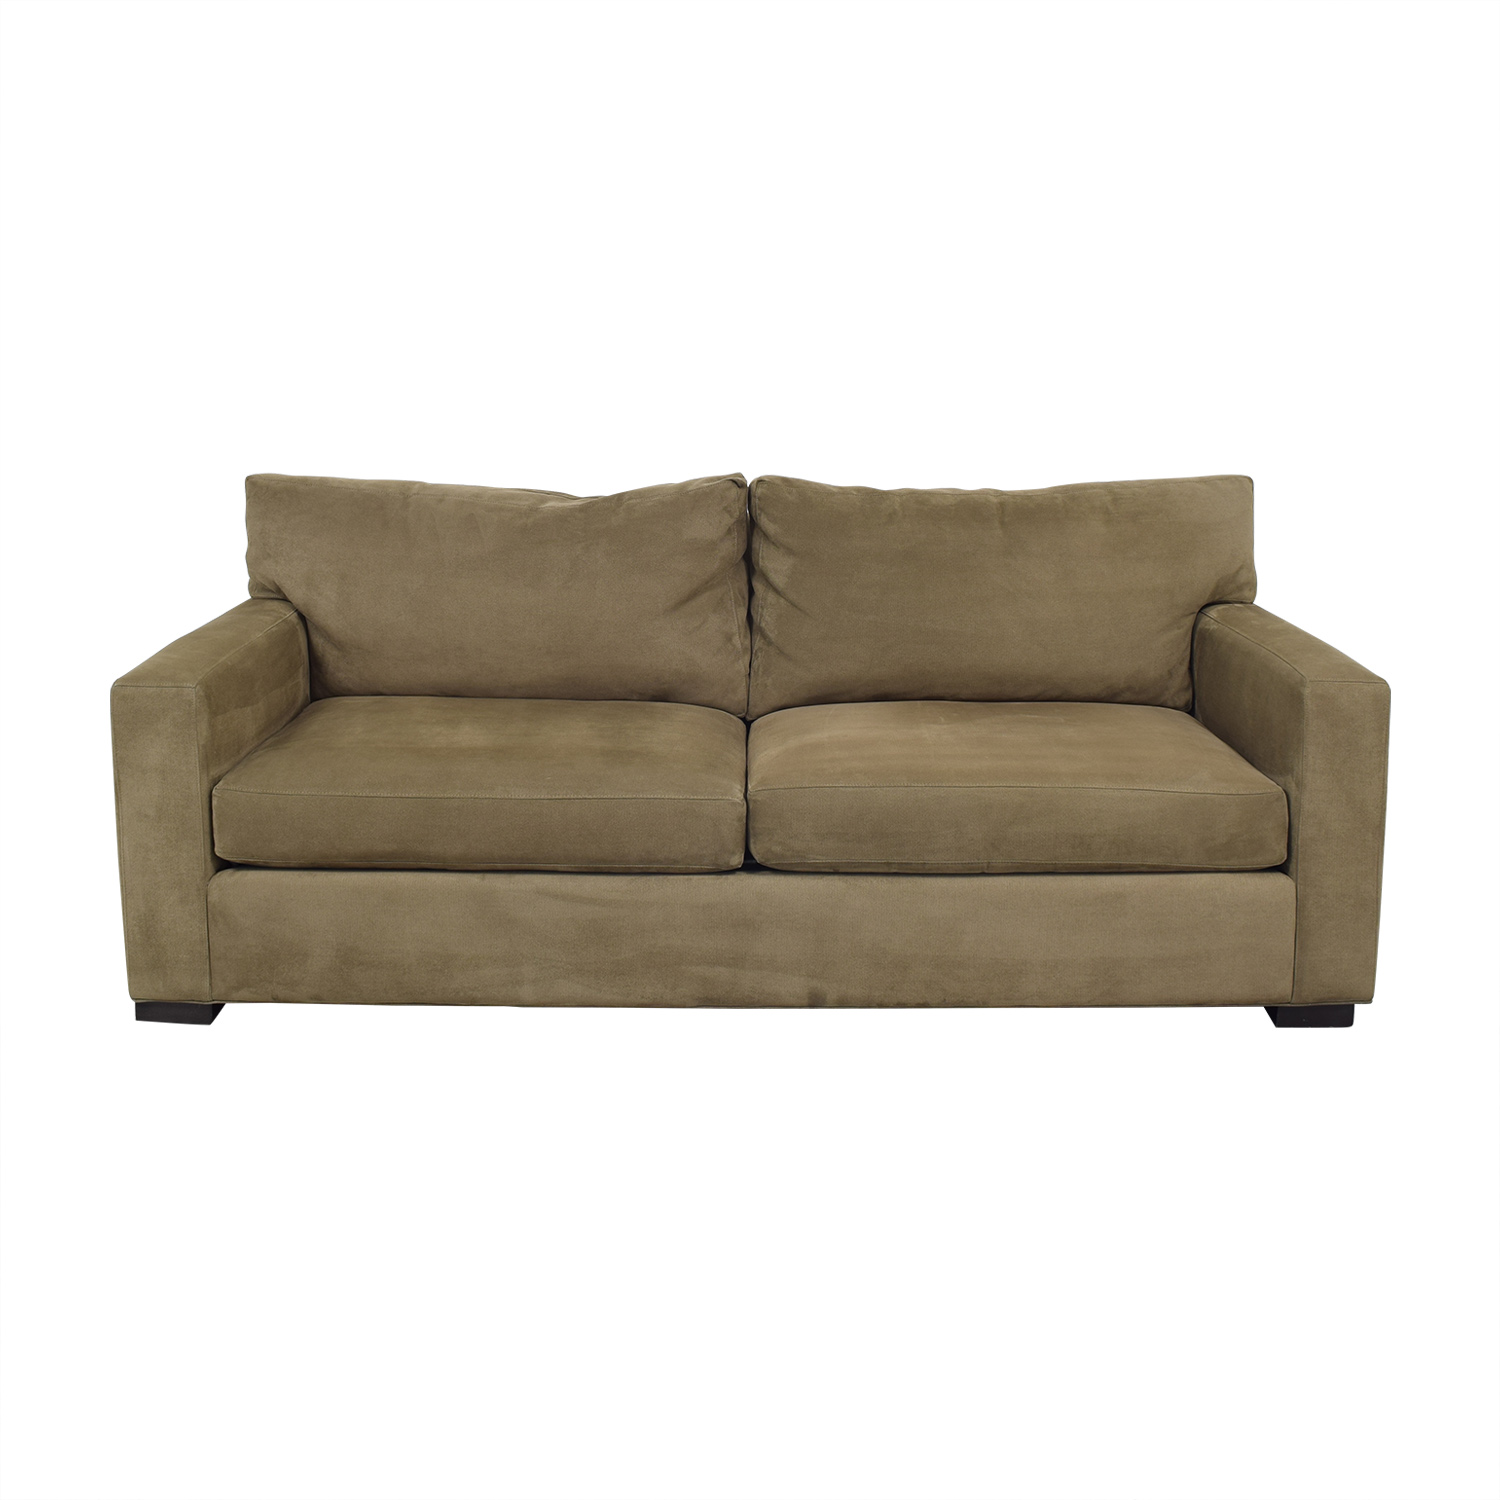 Crate & Barrel Crate & Barrel Axis II 2-Seat Sofa nyc